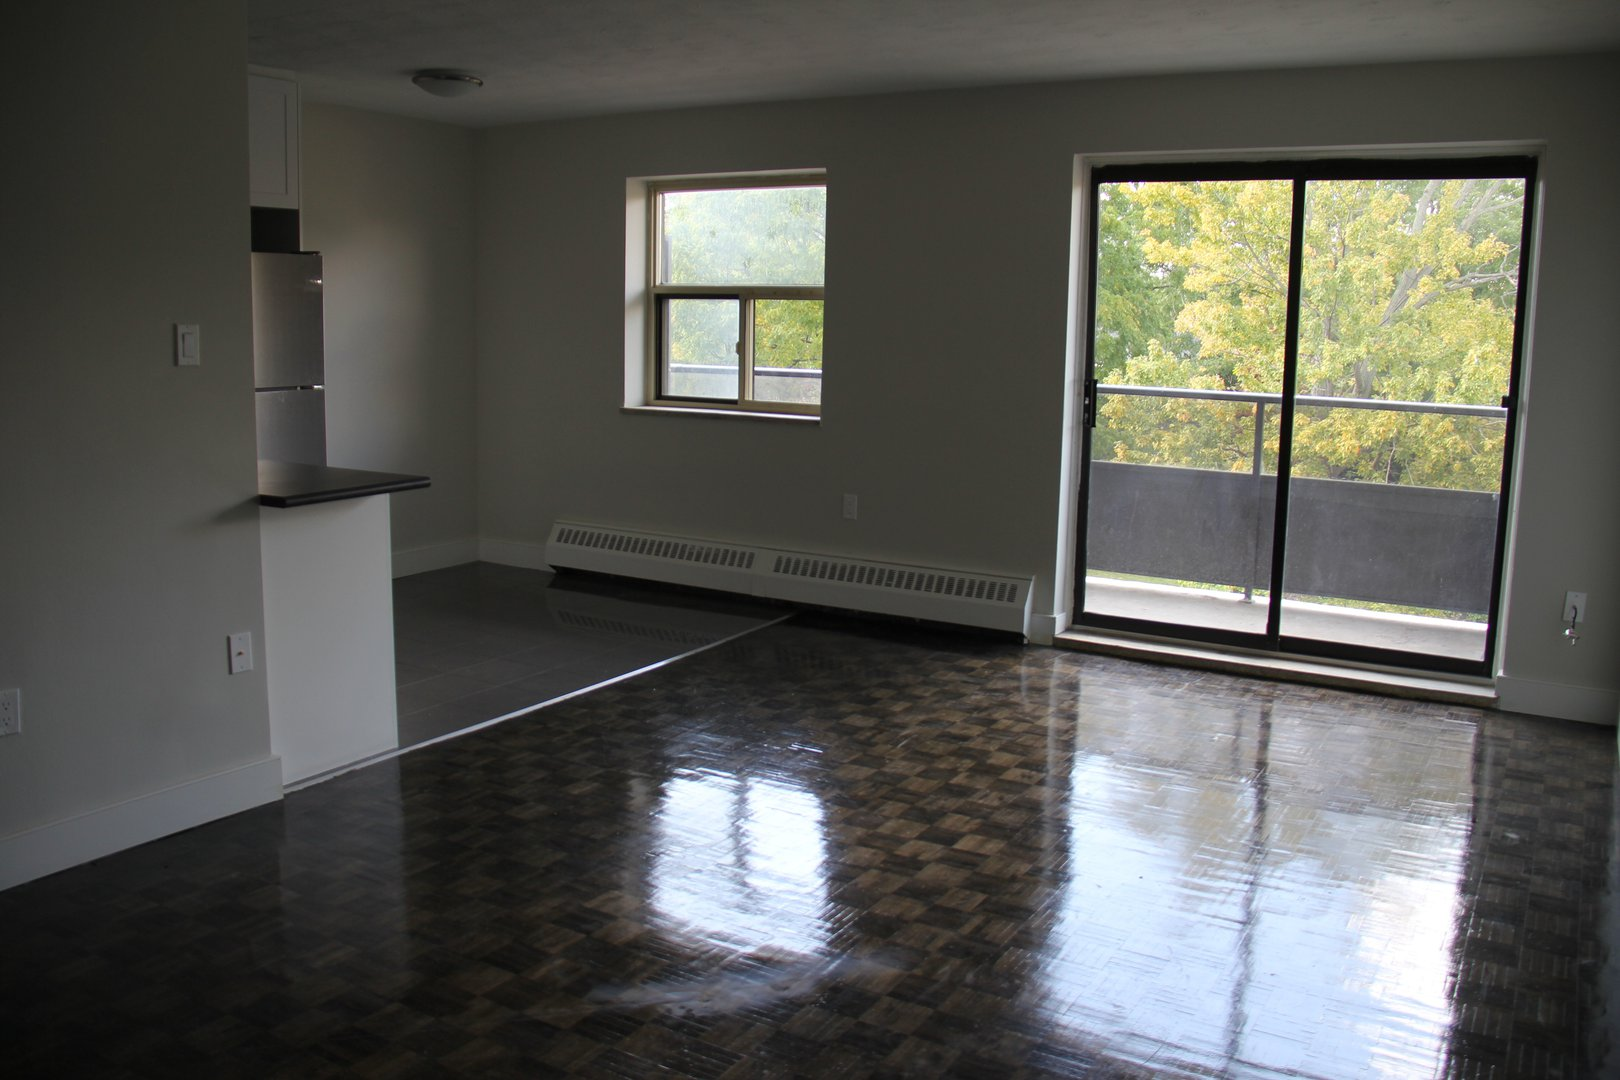 Apartment for rent at 141 Main St S, Brampton, ON. This is the empty room with natural light and hardwood floor.